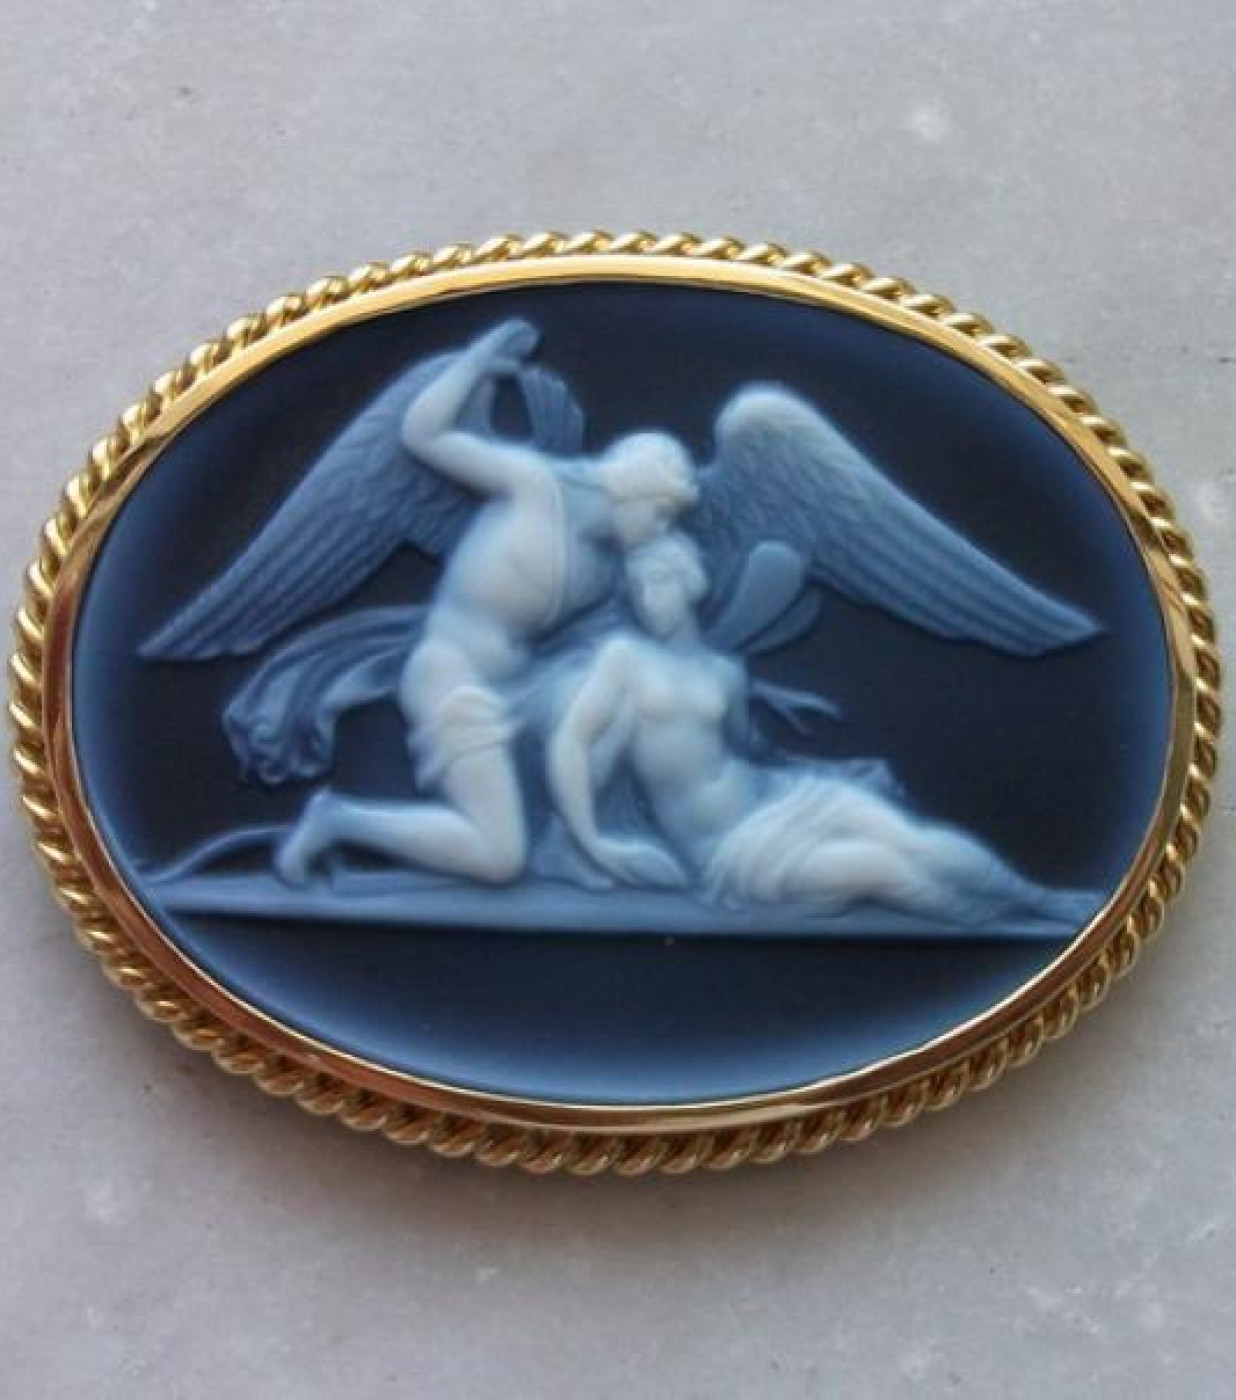 Cupid and Psyche after Thorvaldsen